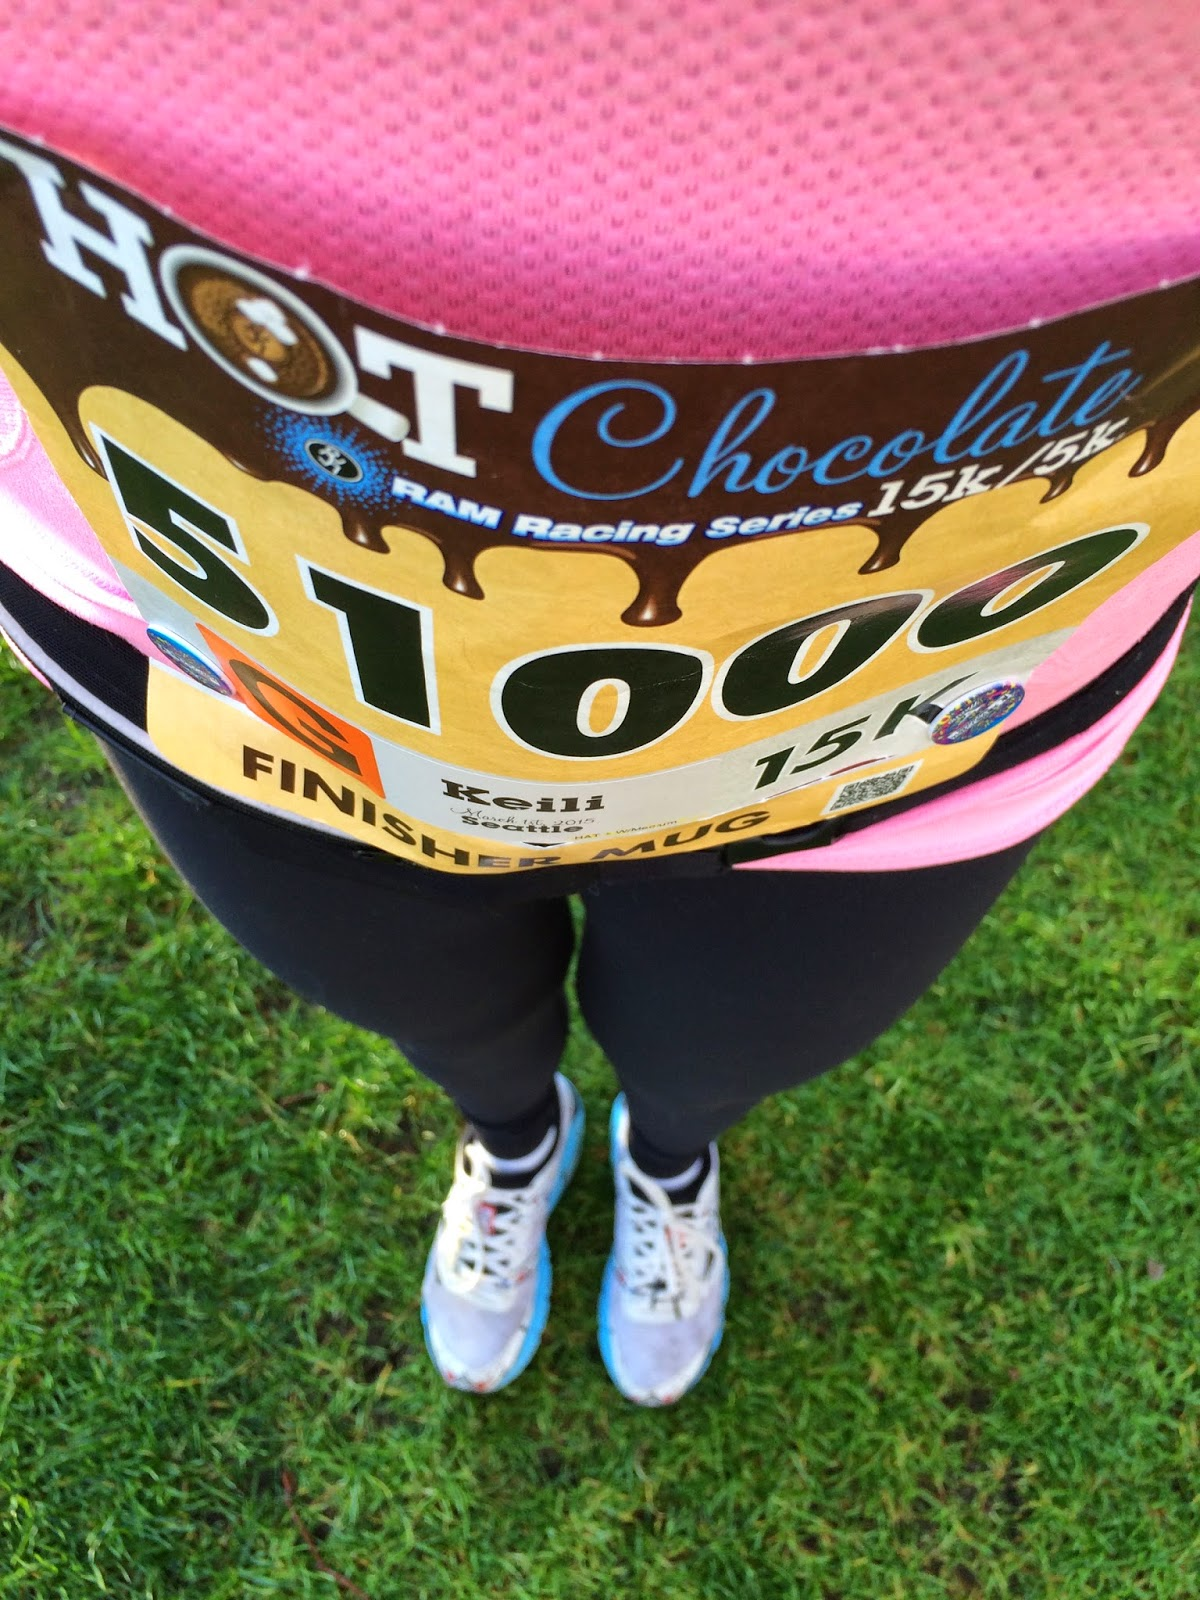 My Running Story and More!: March 2015